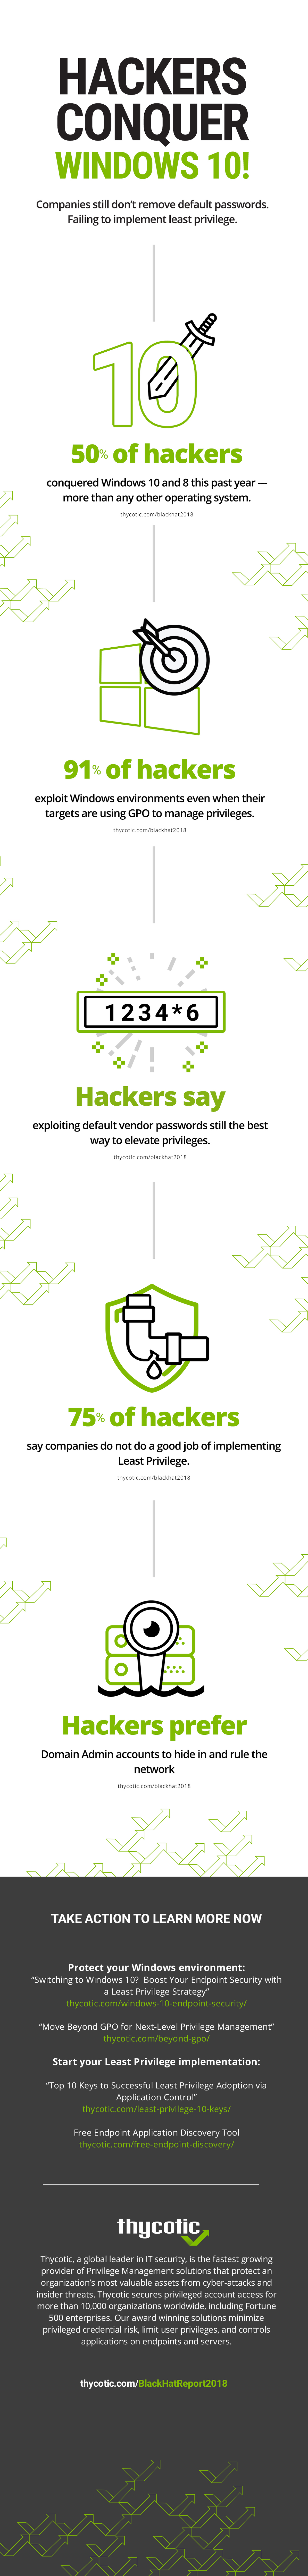 Infographic   Hackers Conquer Windows 10